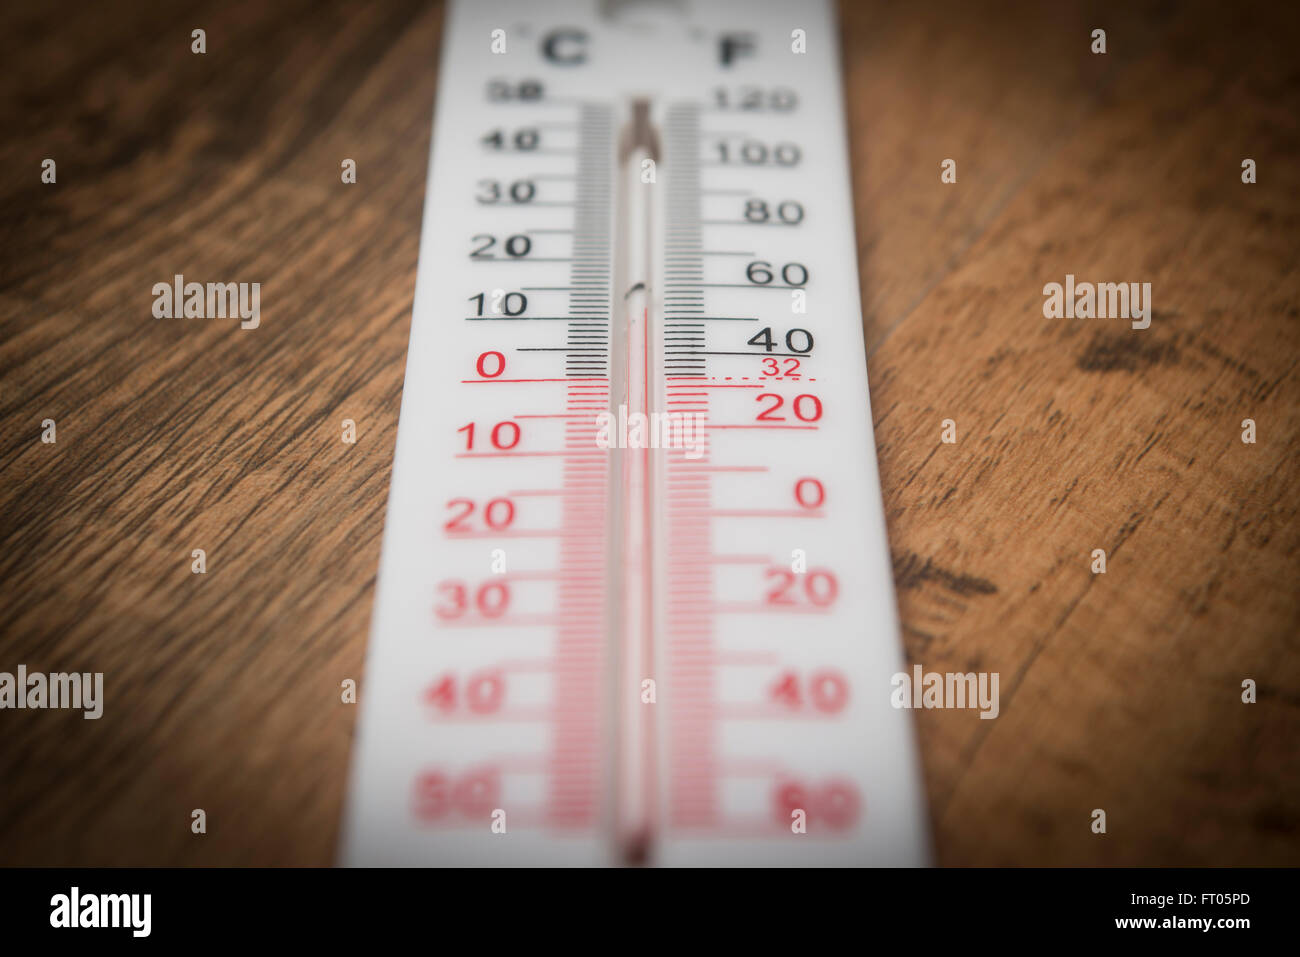 Thermometer measuring room temperature - Stock Image